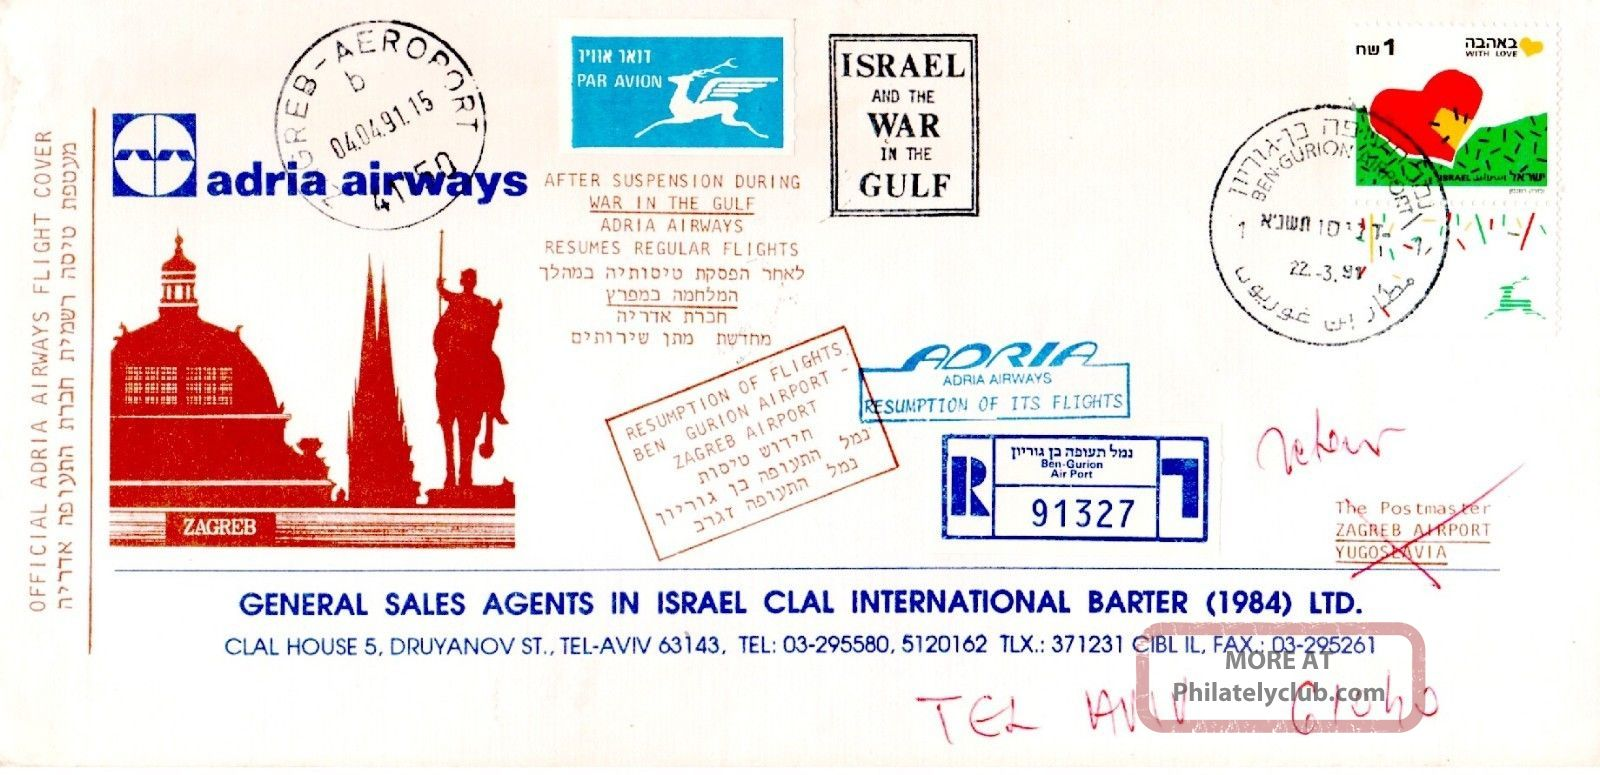 Israel Yugoslavia 1991 Gulf War,  Adria Resumption Flight,  After Suspended.  Ffc Middle East photo